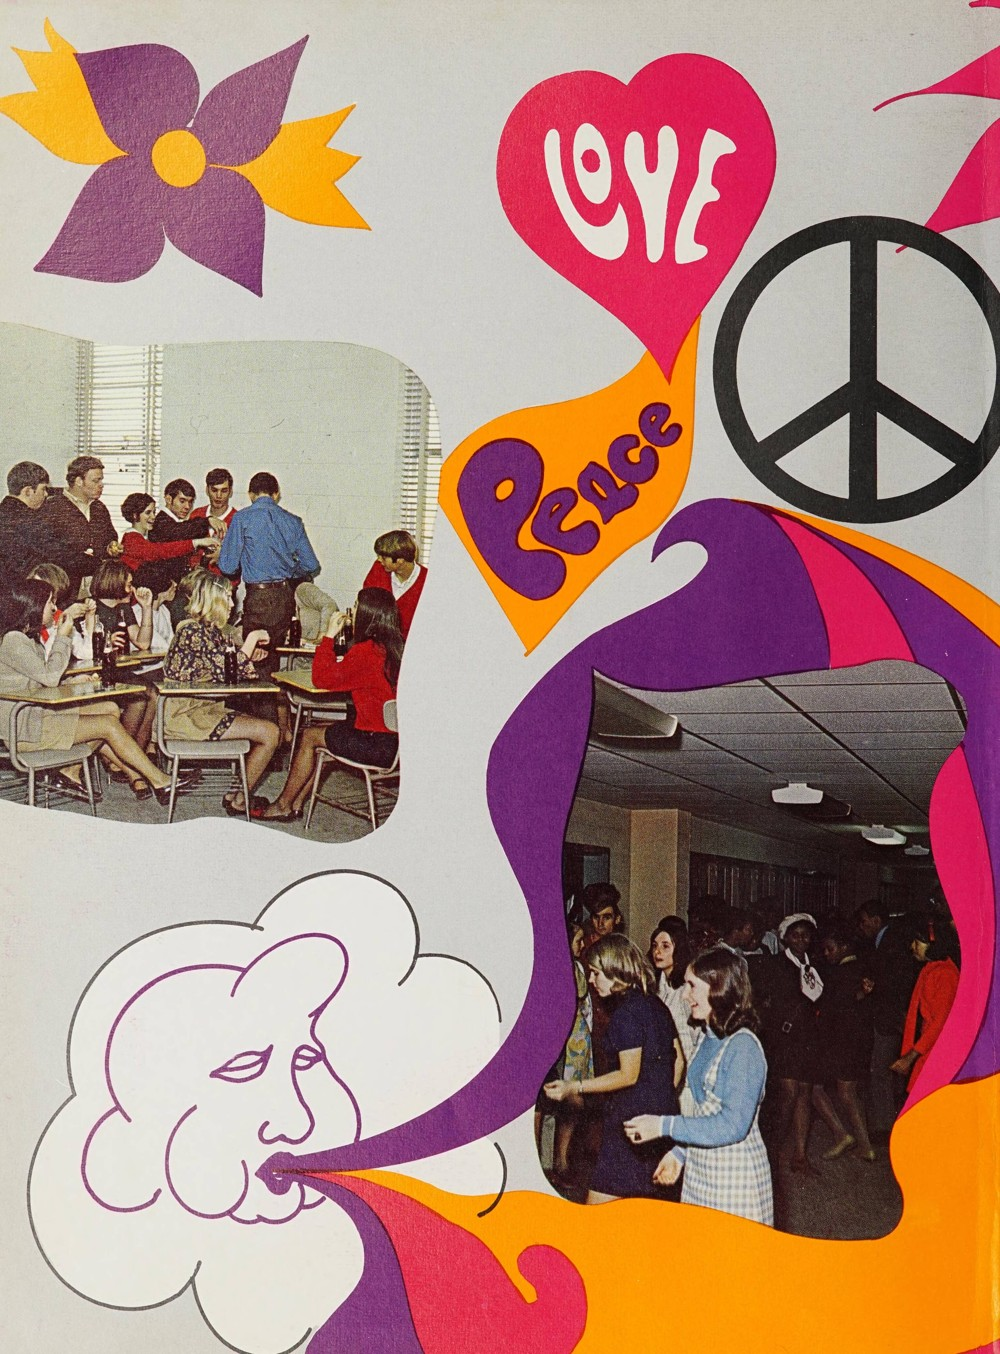 "There are two pictures on the page both with students around the high school. There is a peace symbol and drawing of a cloud blowing air. Words on the page read ""Peace"" and ""Love."""